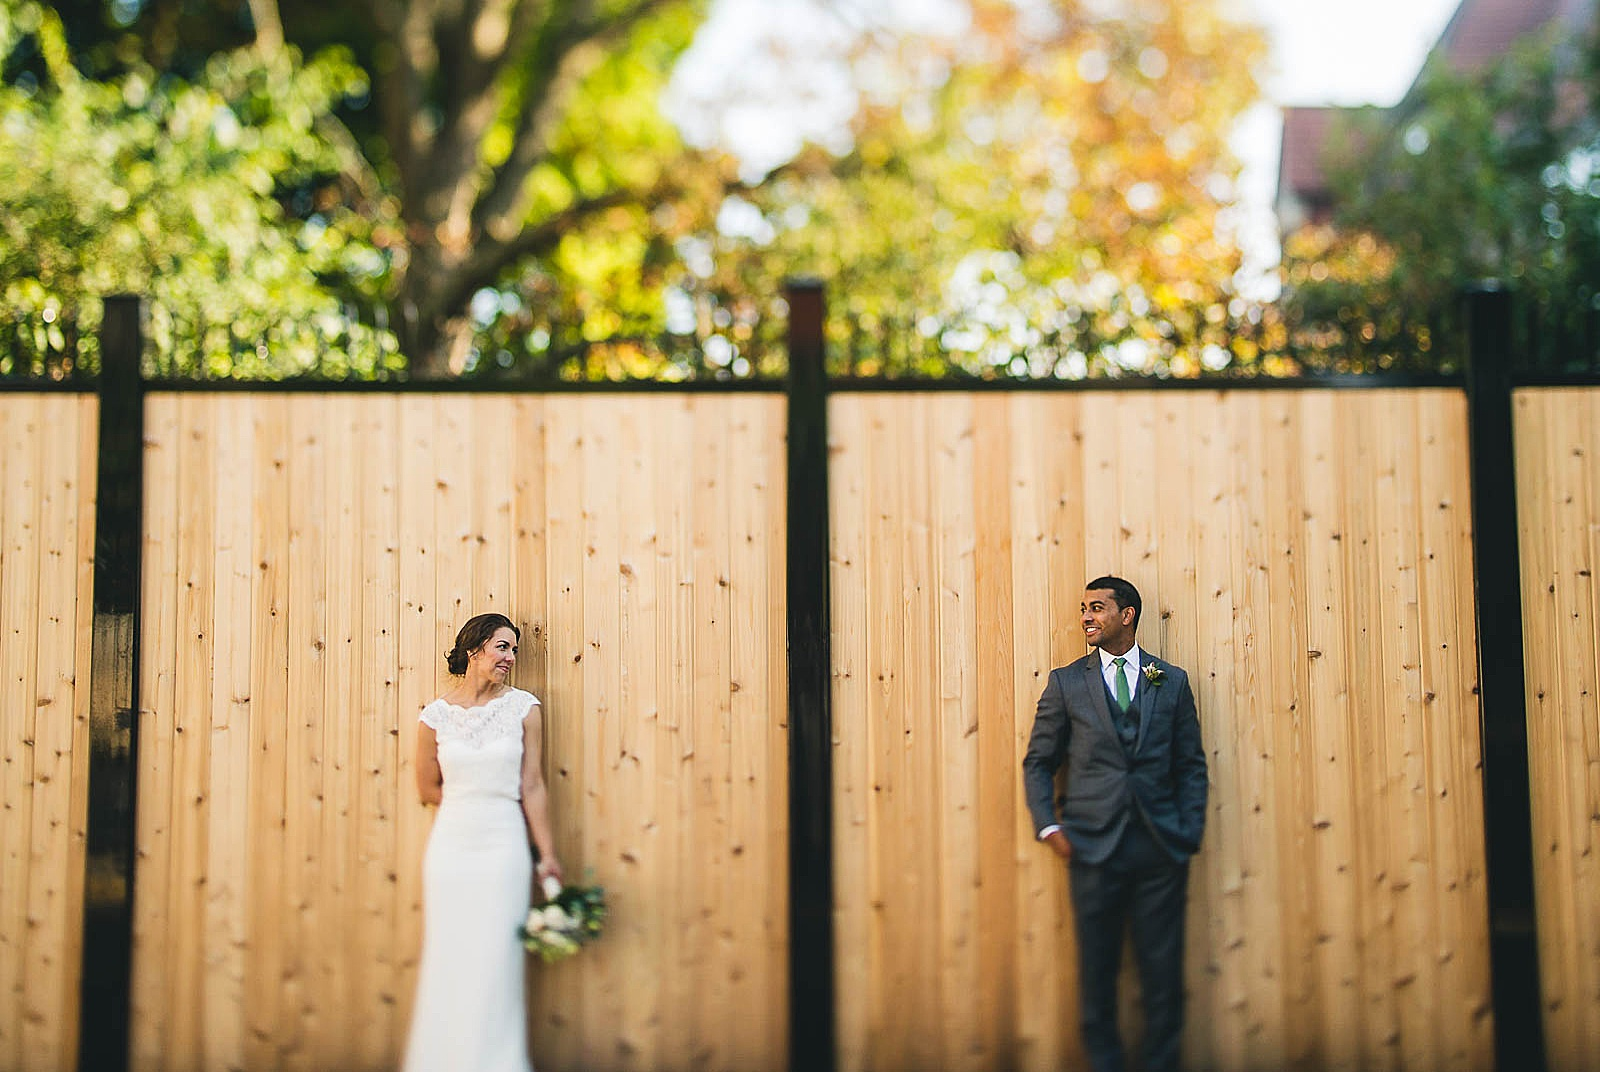 19 fun wedding photos - Wedding at Bridgeport Art Center // Kylie + Sean